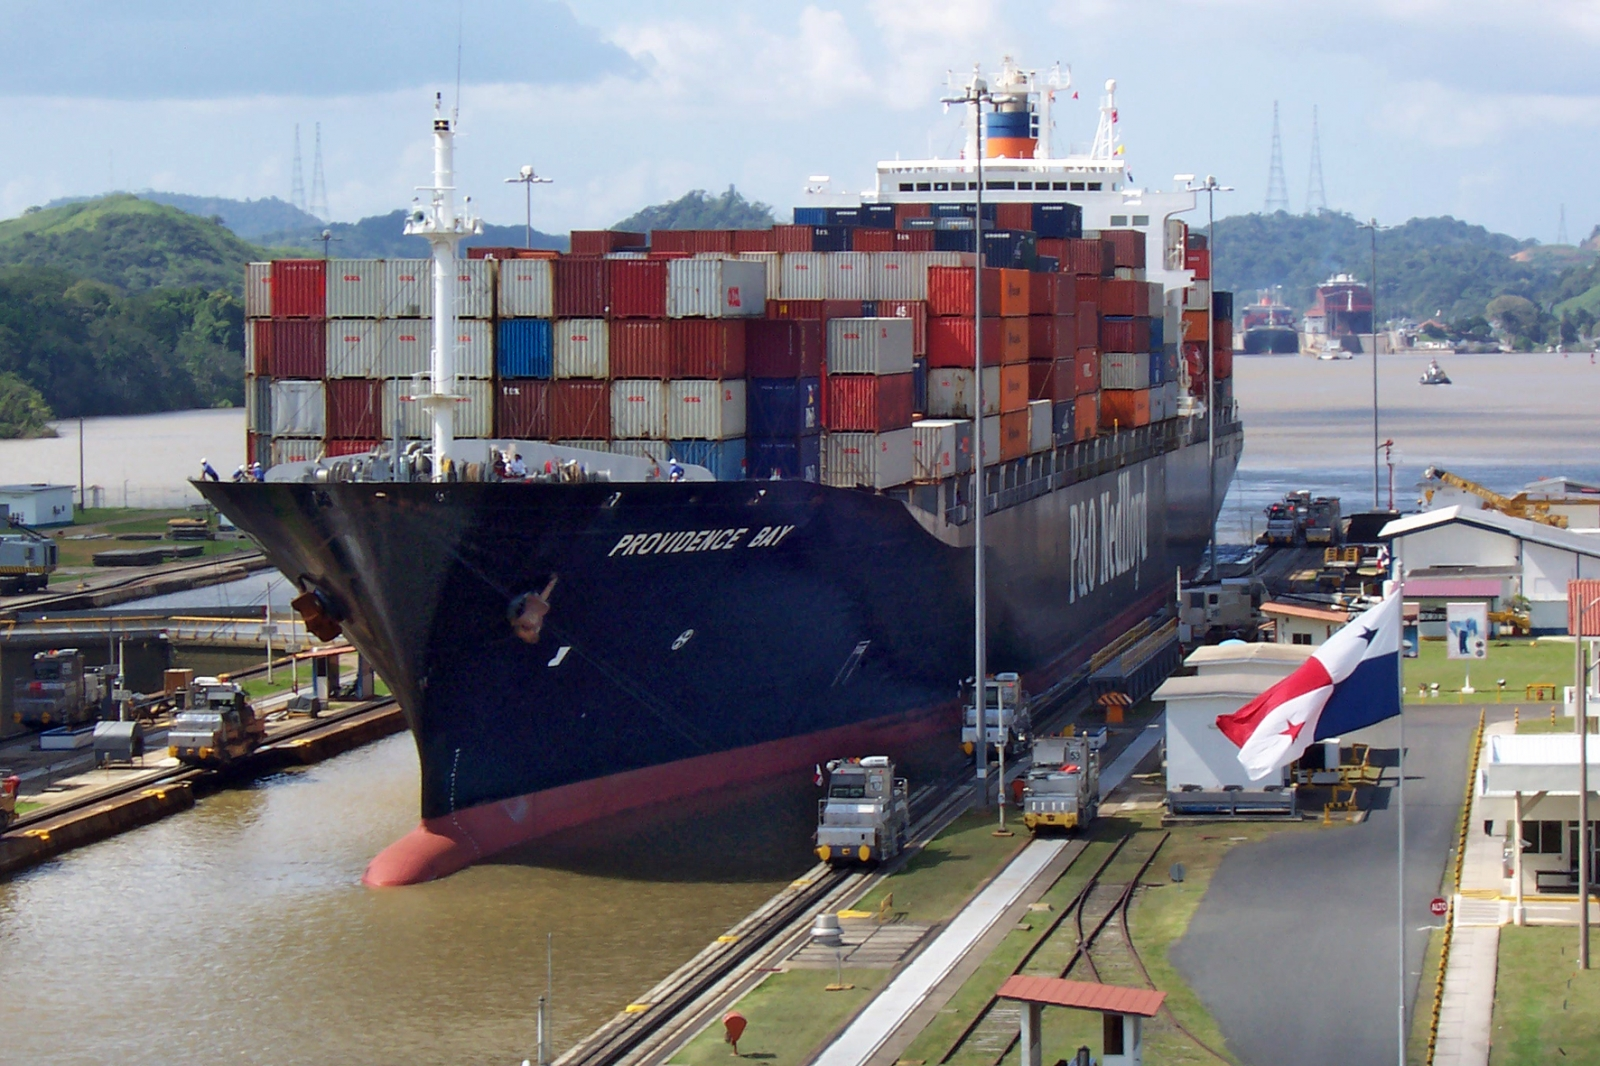 Canal De Panama: Man Dies After 35 People Found In Tilbury Docks Shipping